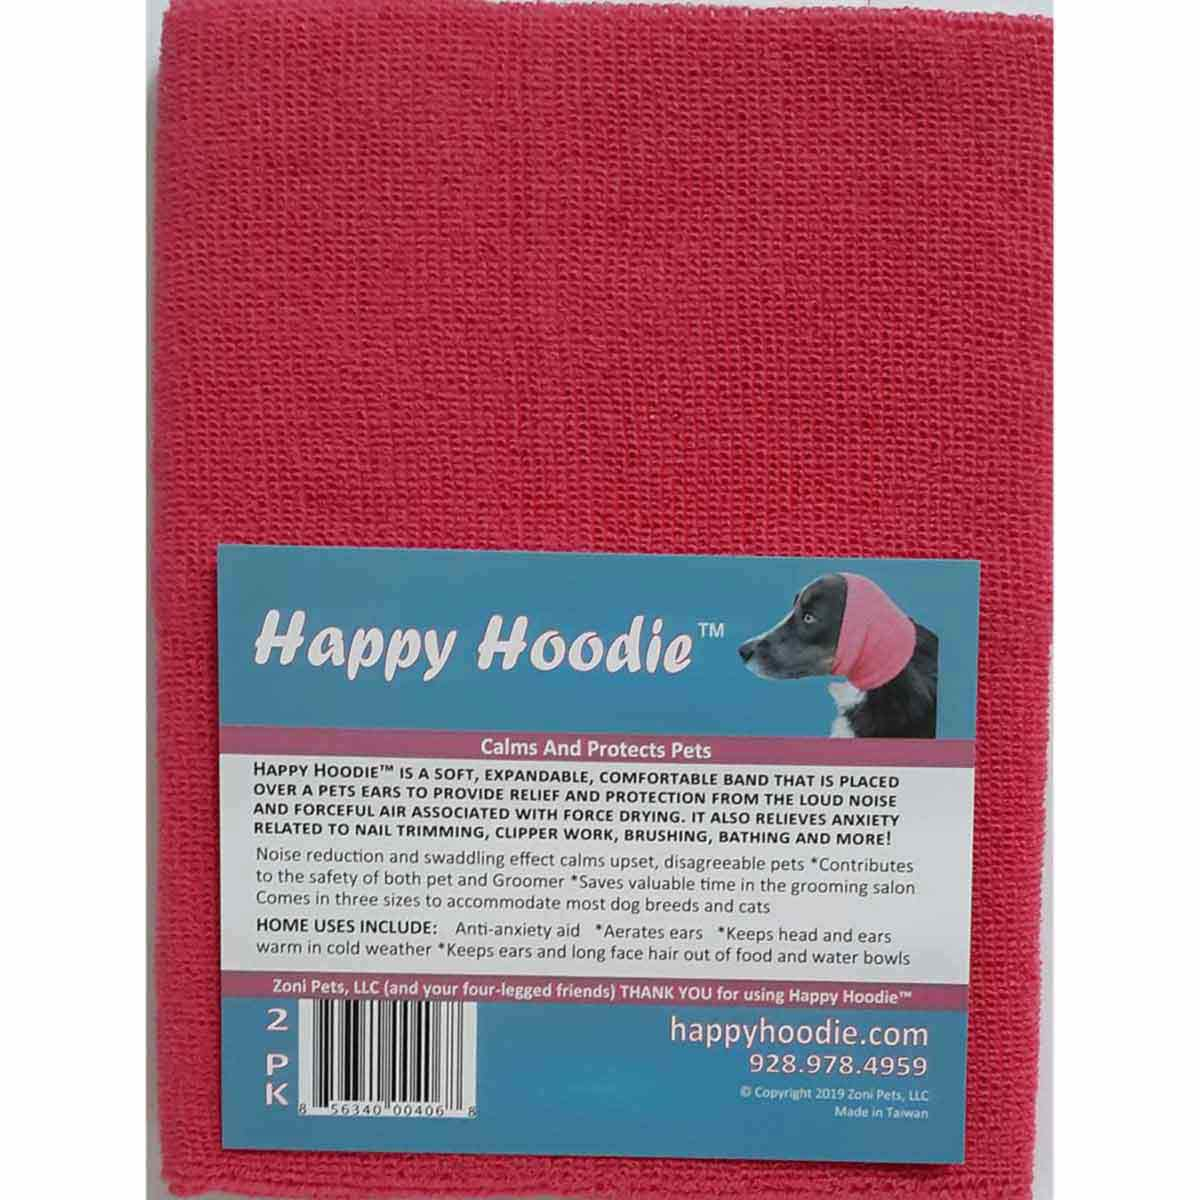 2 Pack of Pink Happy Hoodie has 1 Small & 1 Large